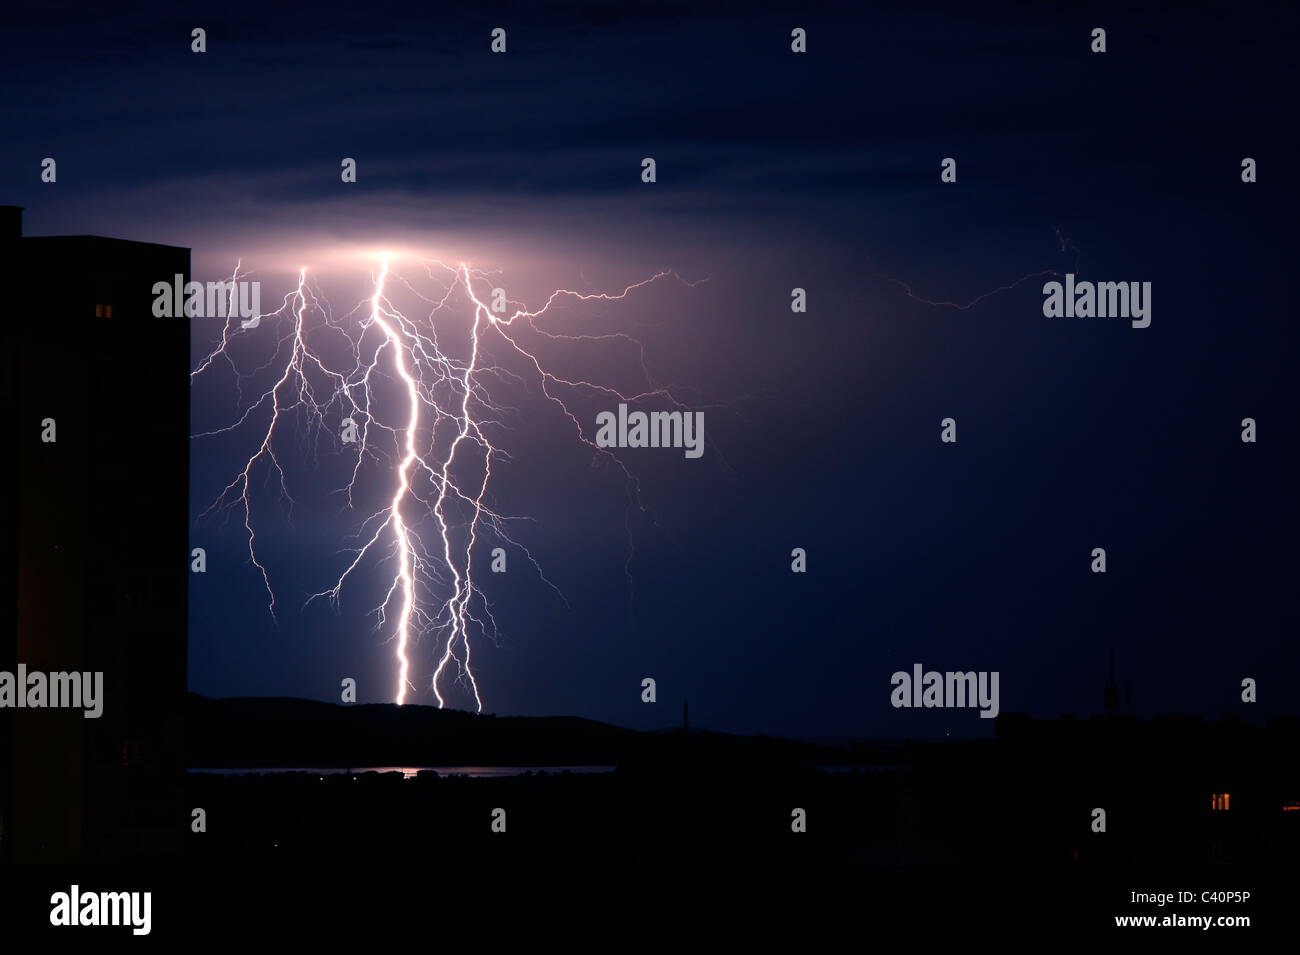 Lightning storm strikes over city and sea - Stock Image